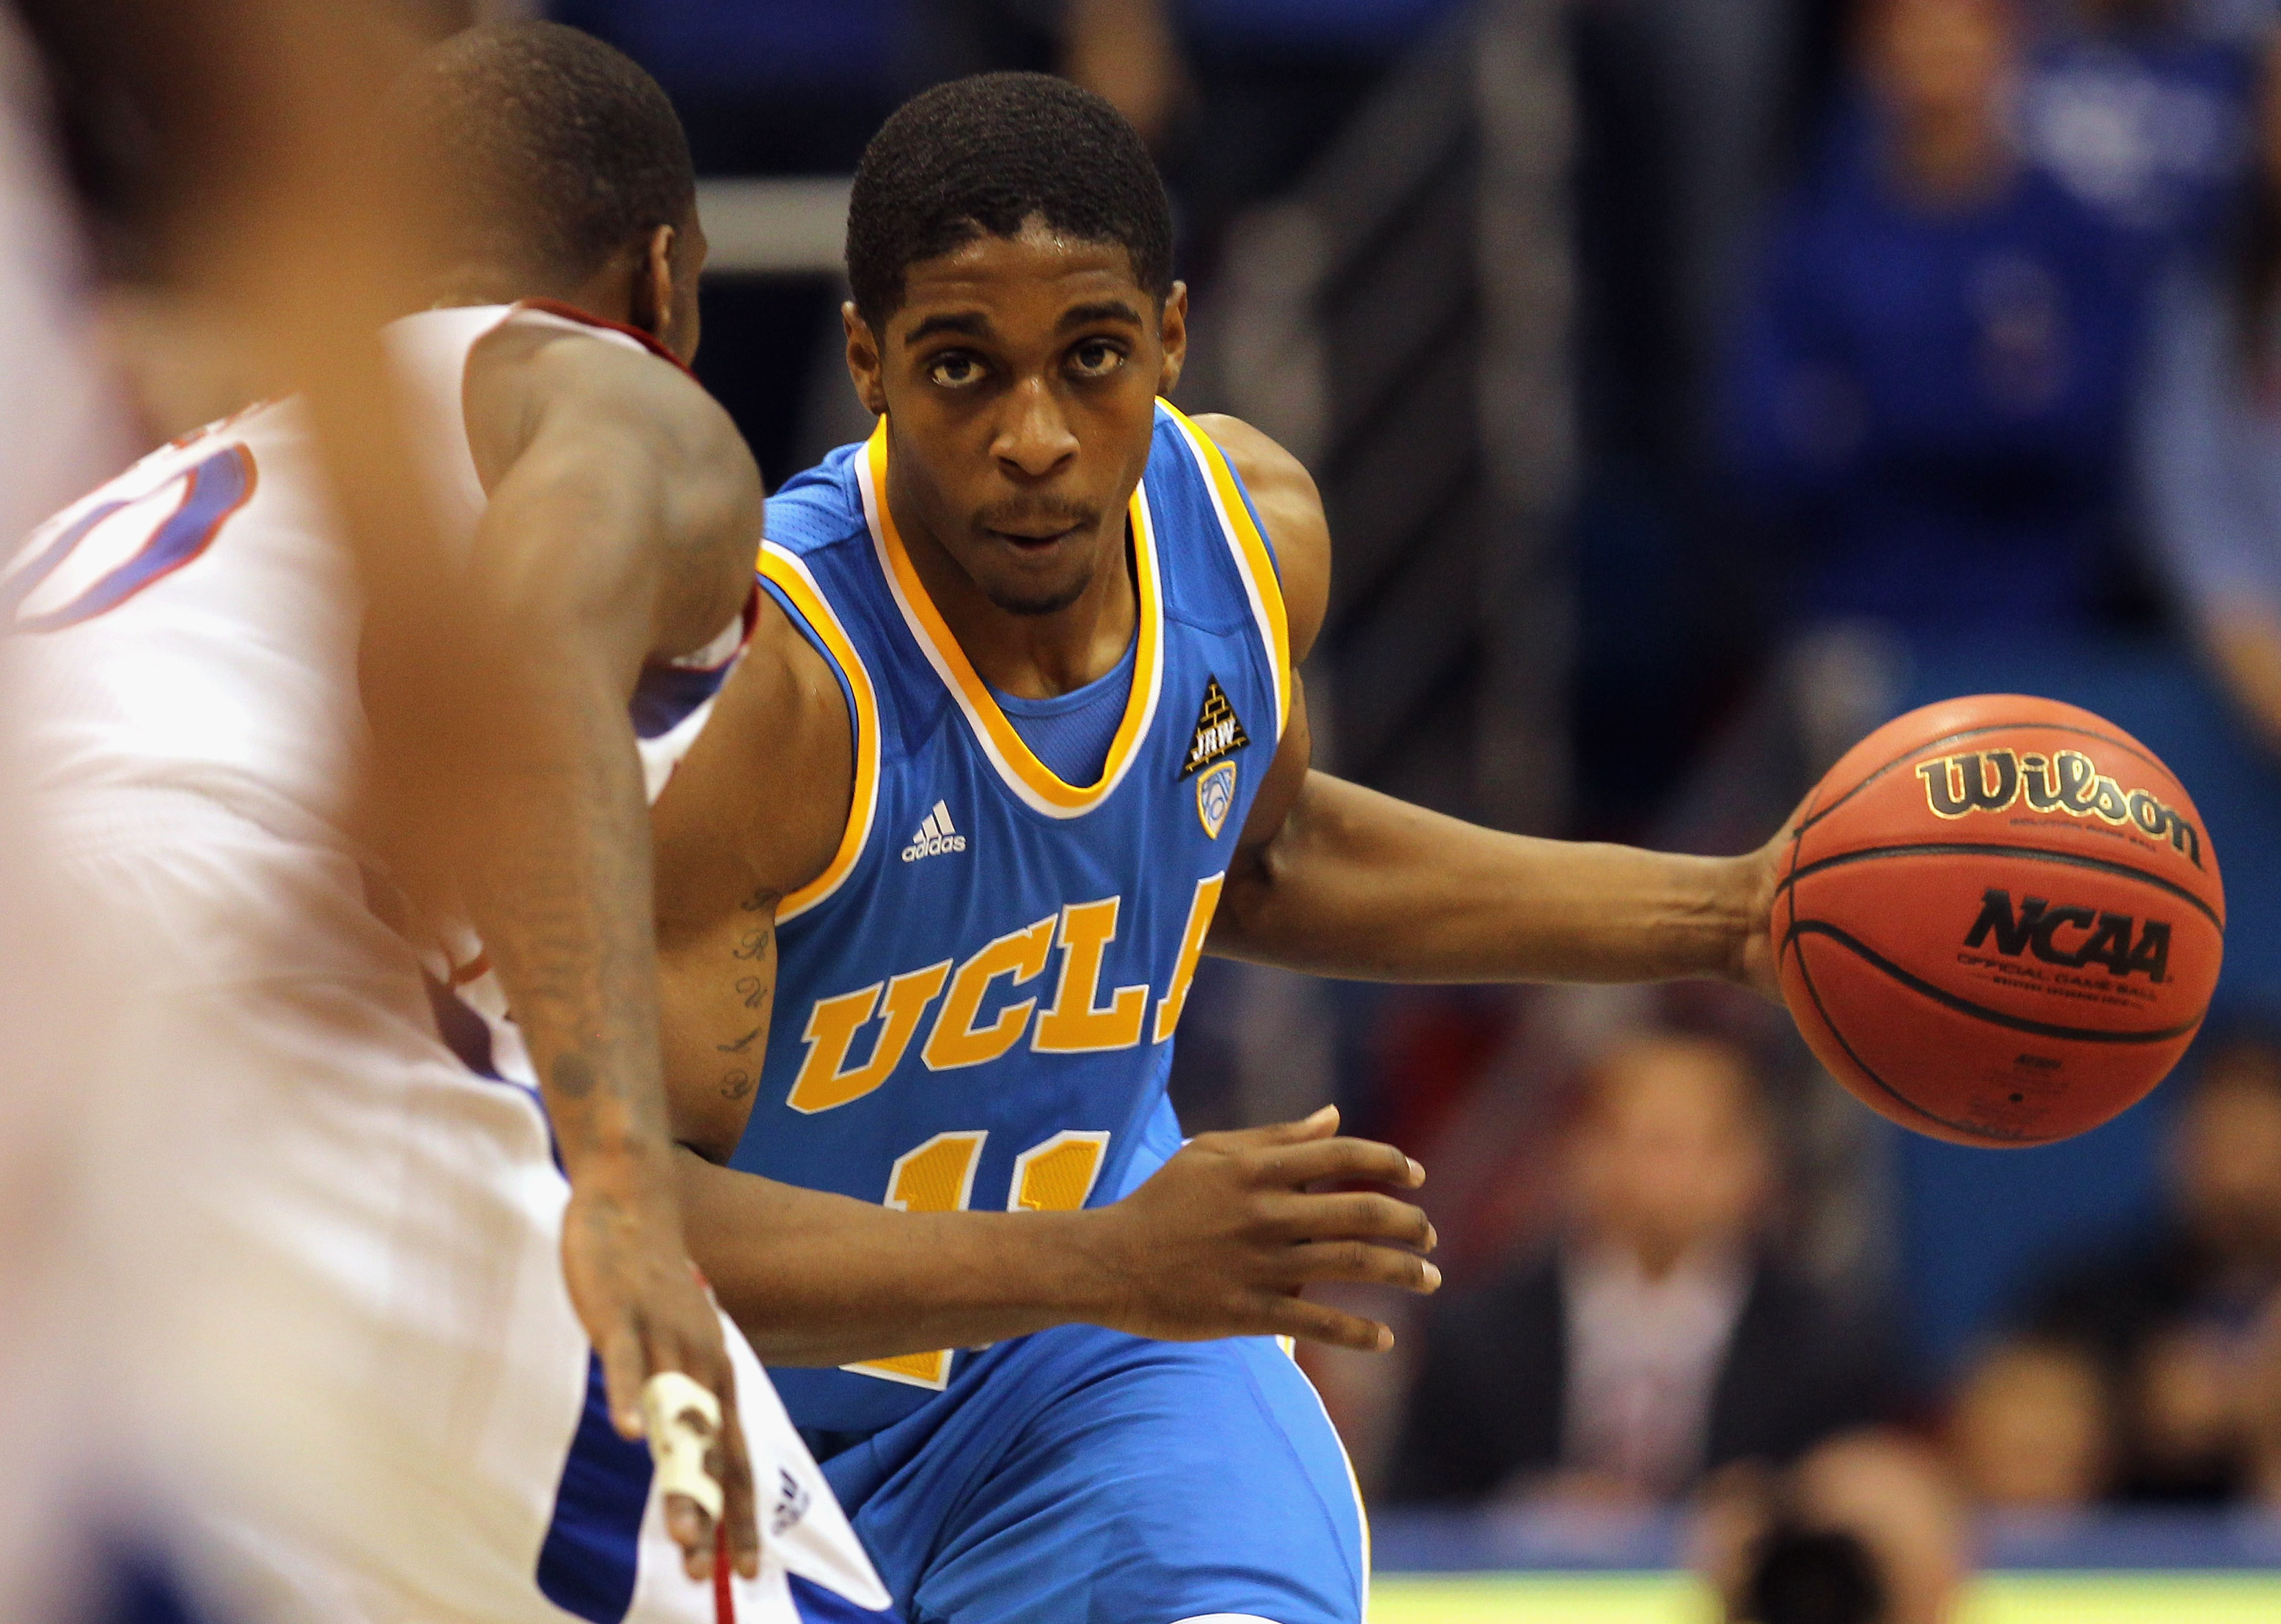 LAWRENCE, KS - DECEMBER 02:  Lazeric Jones #11 of the UCLA Bruins in action during the game against the Kansas Jayhawks on December 2, 2010 at Allen Fieldhouse in Lawrence, Kansas.  (Photo by Jamie Squire/Getty Images)